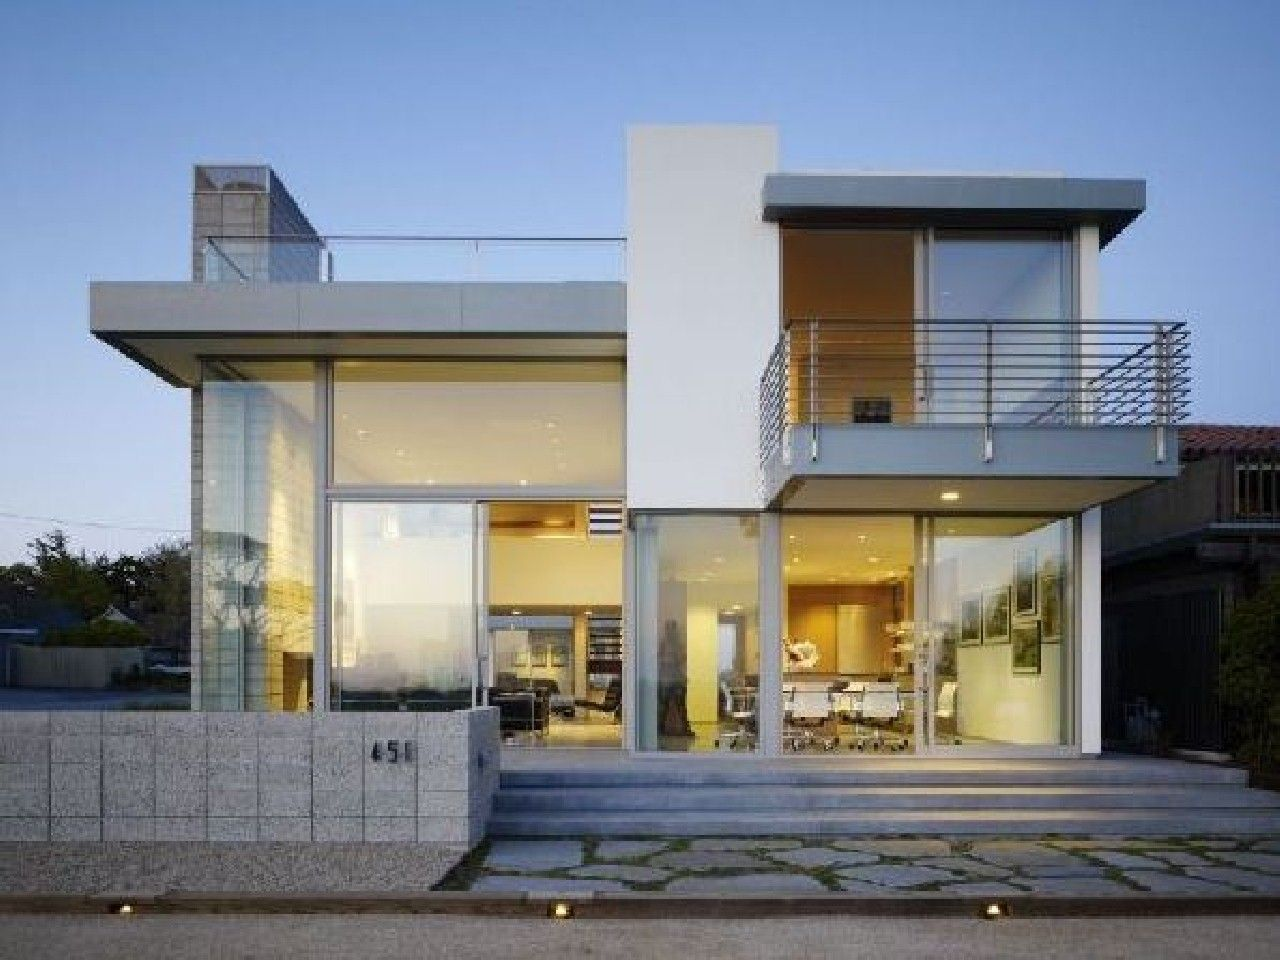 Modern Minimalist House Design modern minimalist house designs and architectures - home design